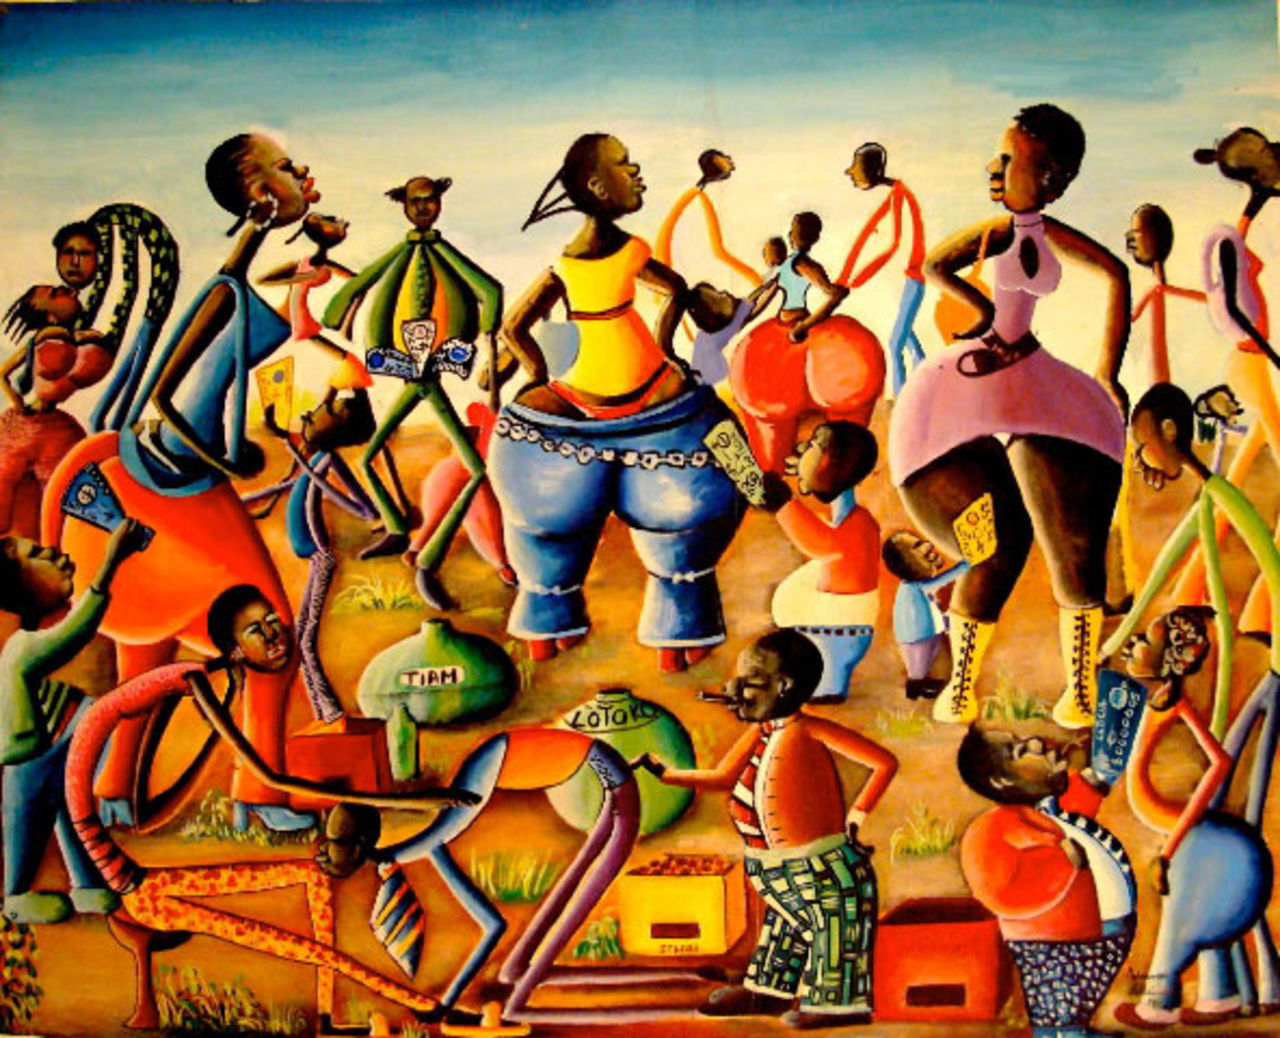 leticia crolle mahoungou mes tableaux